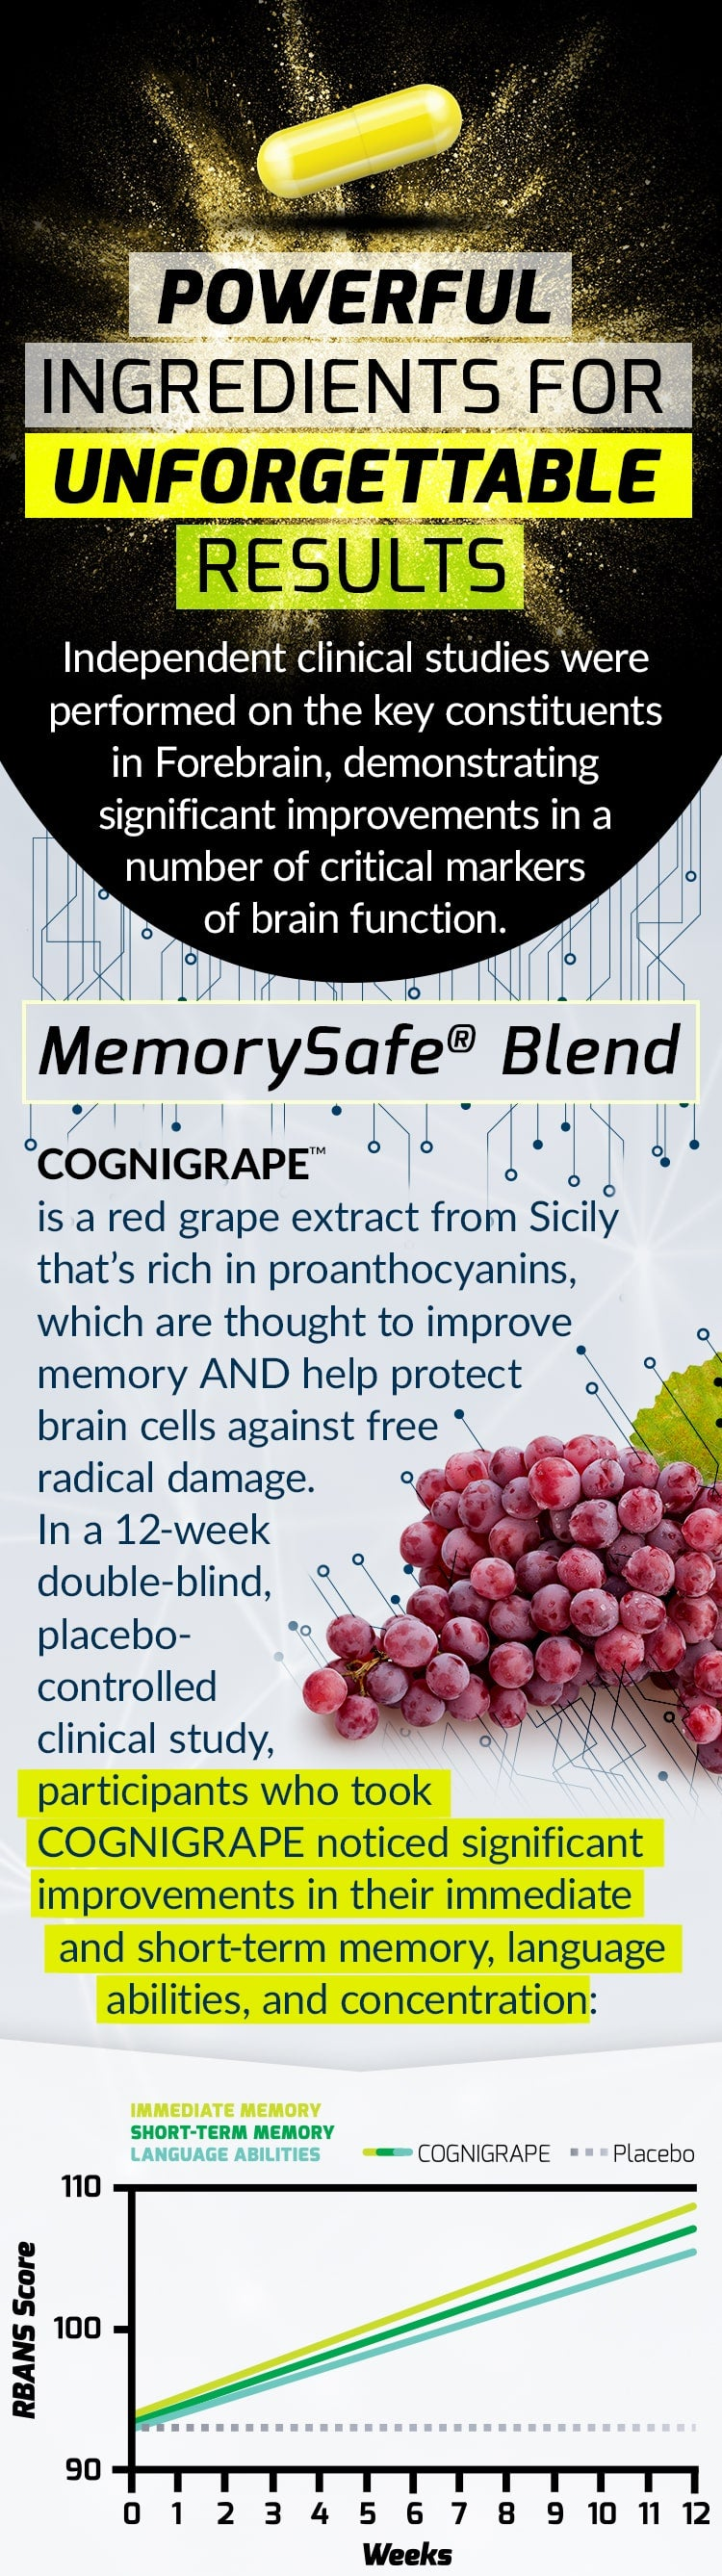 POWERFUL INGREDIENTS FOR UNFORGETTABLE RESULTS. Independent clinical studies were performed on the key constituents in Forebrain, demonstrating significant improvements in a number of critical markers of brain function. MemorySafe® Blend- COGNIGRAPE™ is a red grape extract from Sicily that's rich in proanthocyanins, which are thought to improve memory AND help protect brain cells against free radical damage. In a 12-week double-blind, placebo-controlled clinical study, participants who took COGNIGRAPE noticed significant improvements in their immediate and short-term memory, language abilities, and concentration: